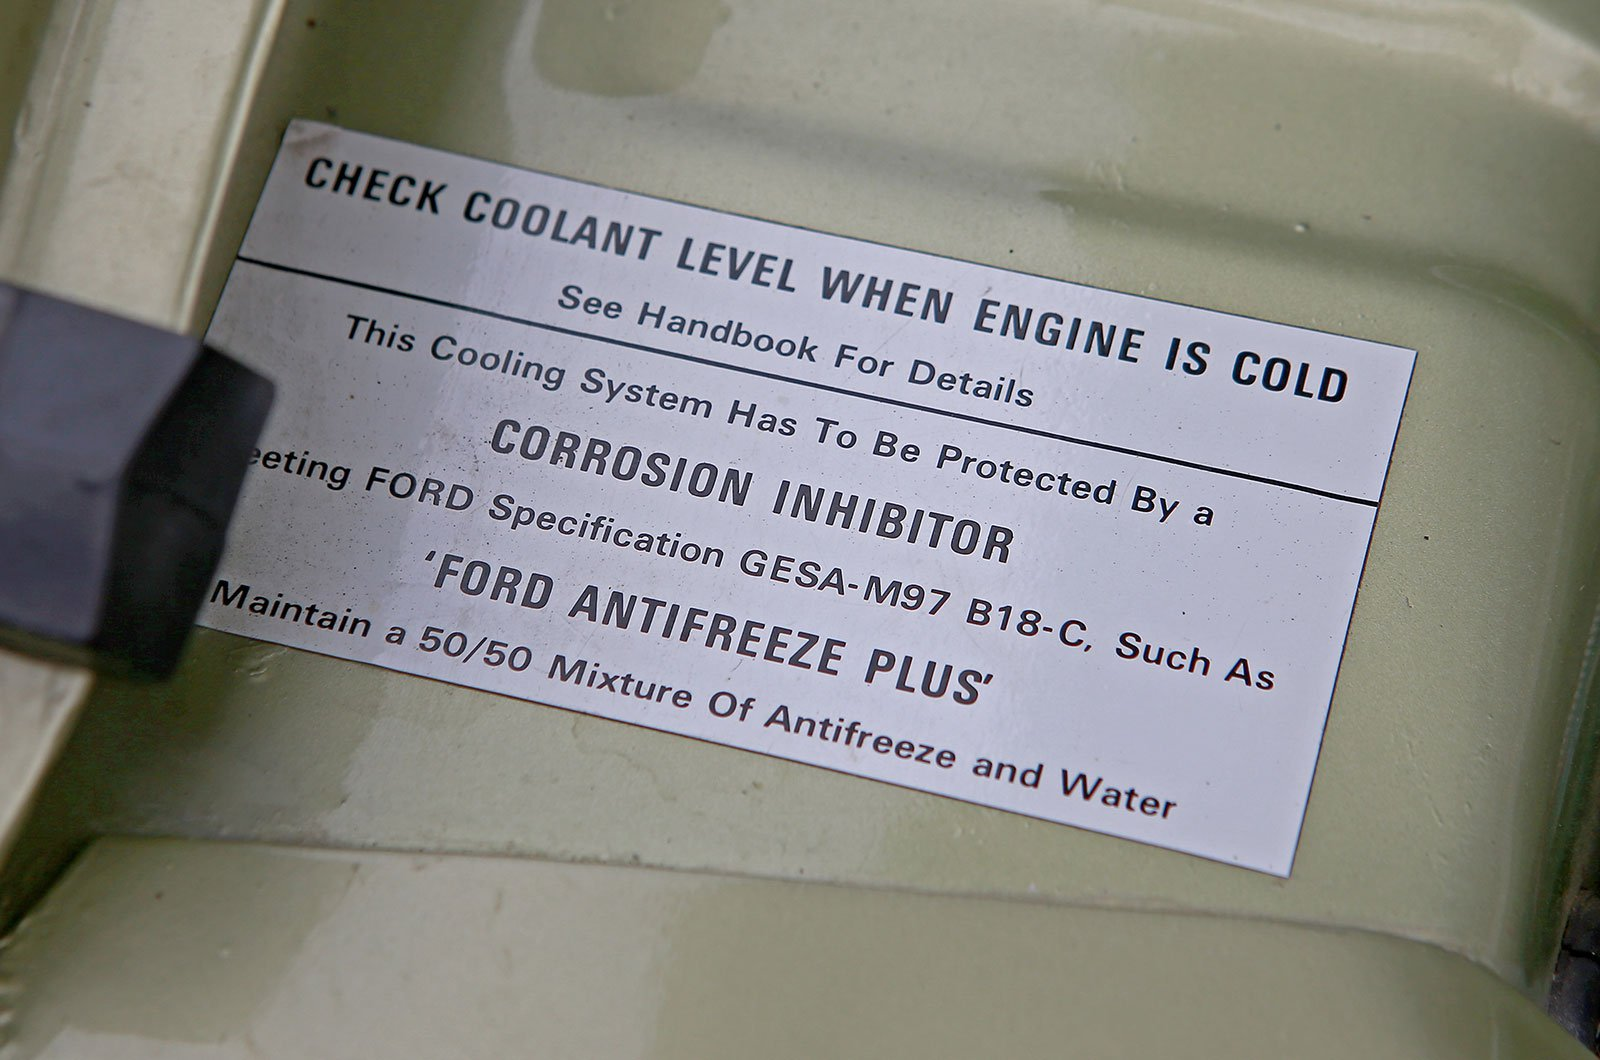 Coolant label